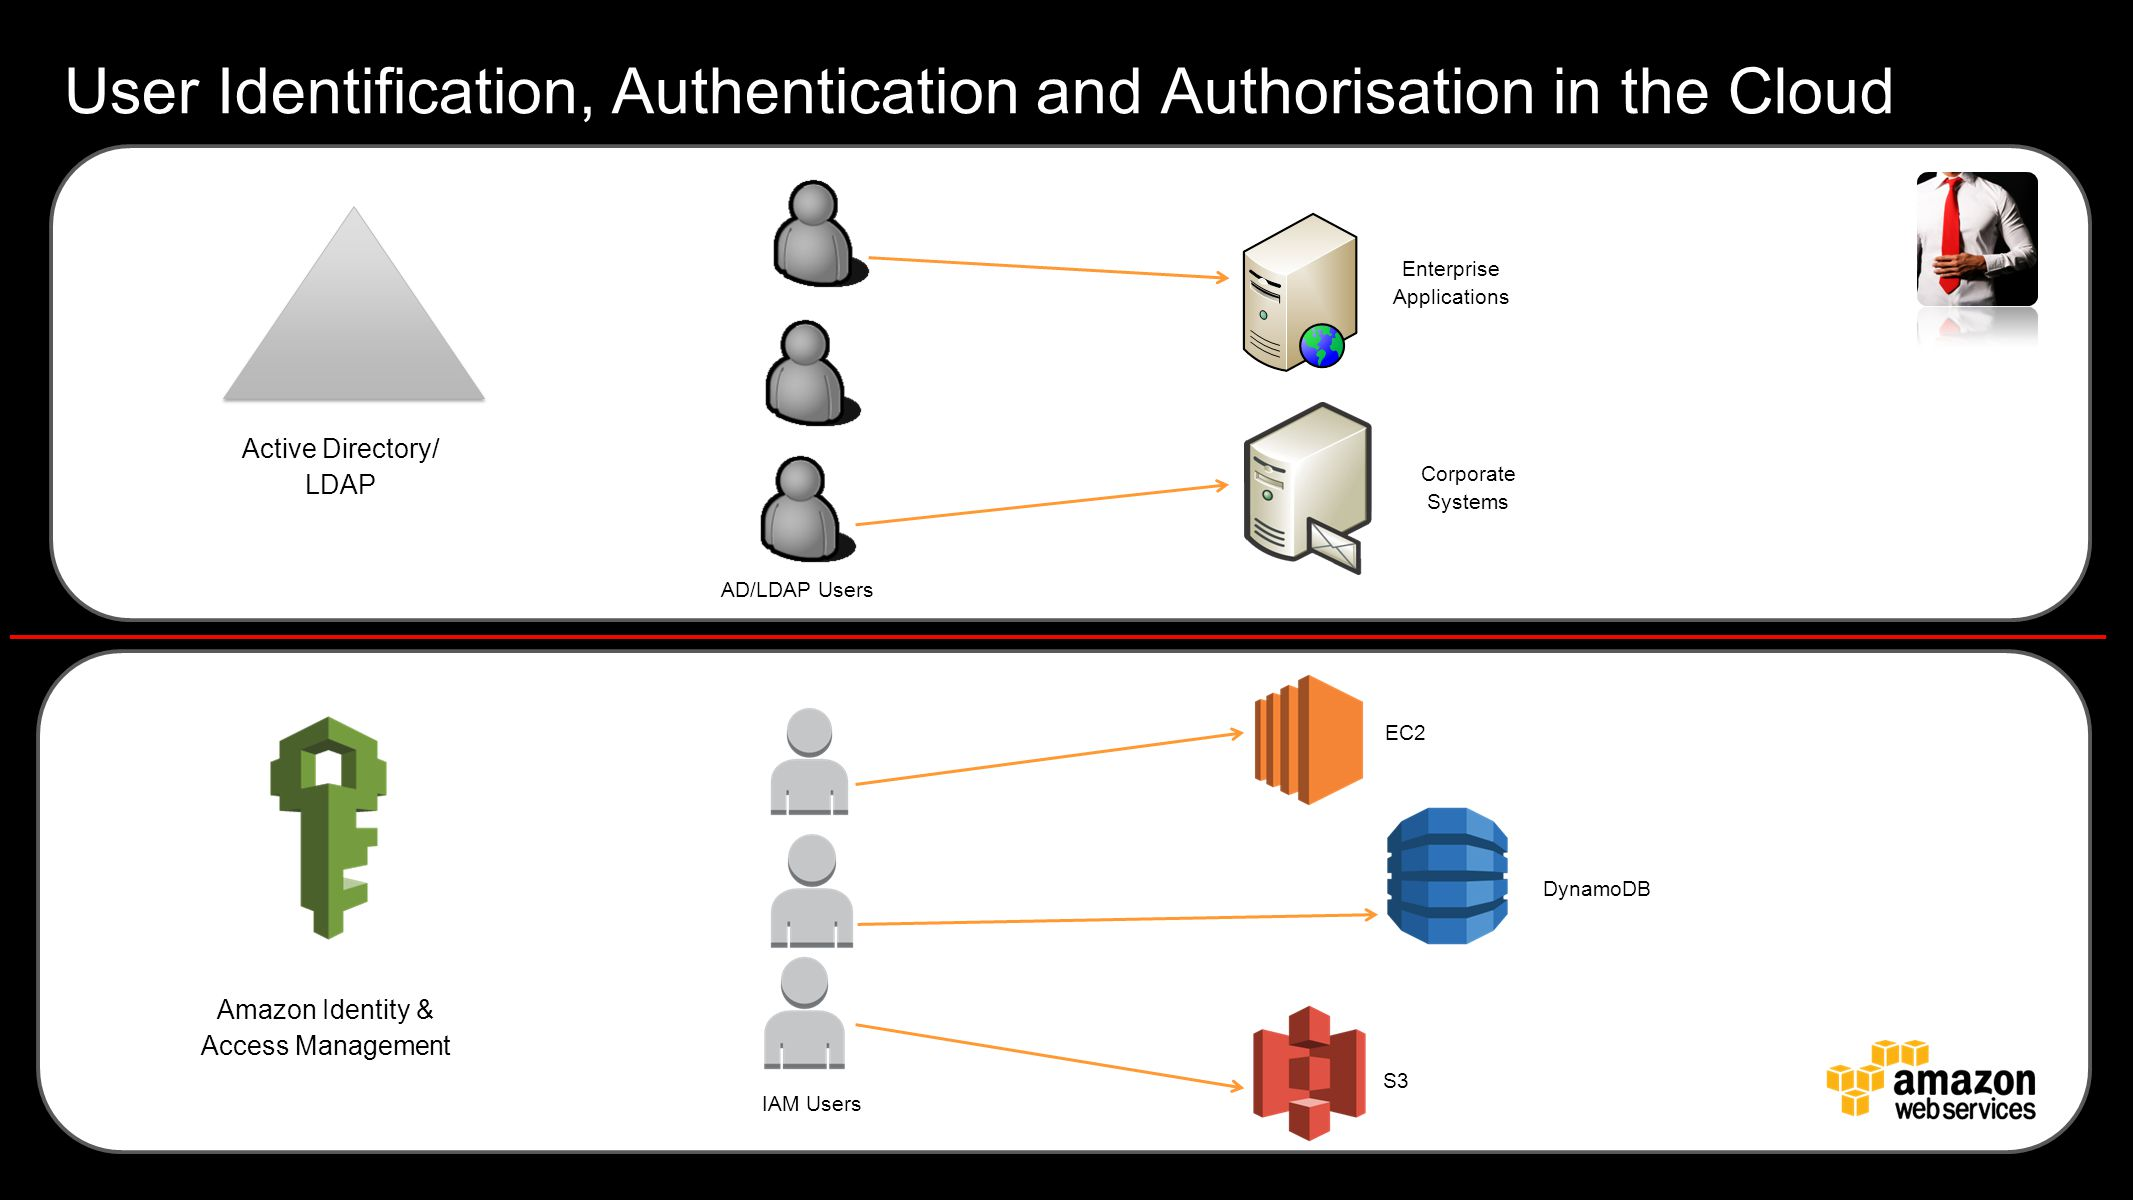 User Identification, Authentication and Authorisation in the Cloud